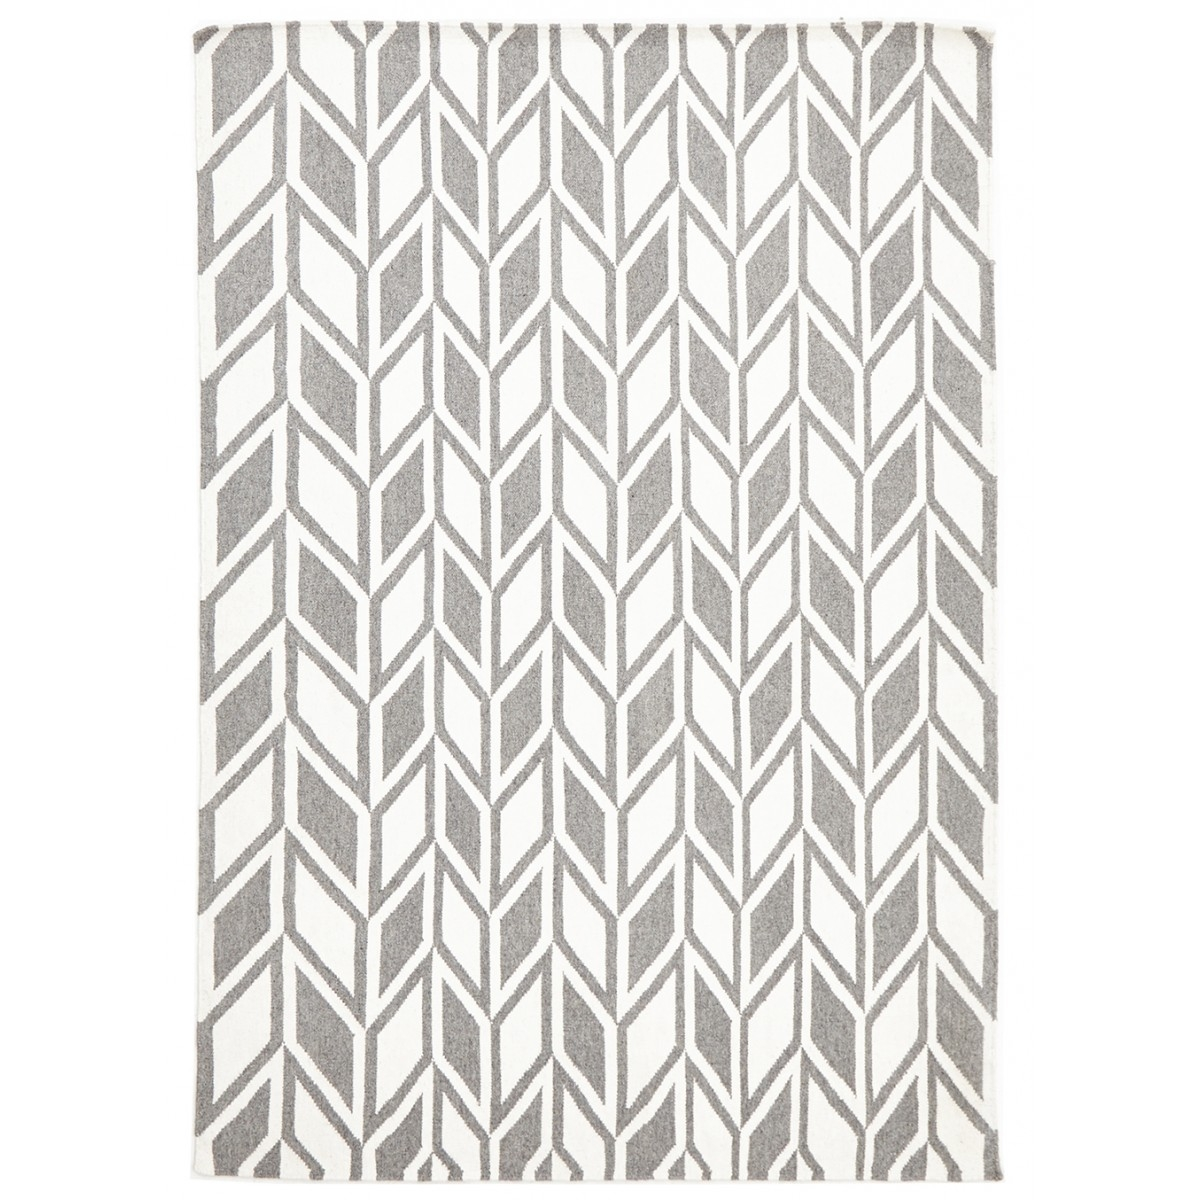 Gray Chevron Rug In Black And Grey Chevron Rugs (Image 9 of 15)